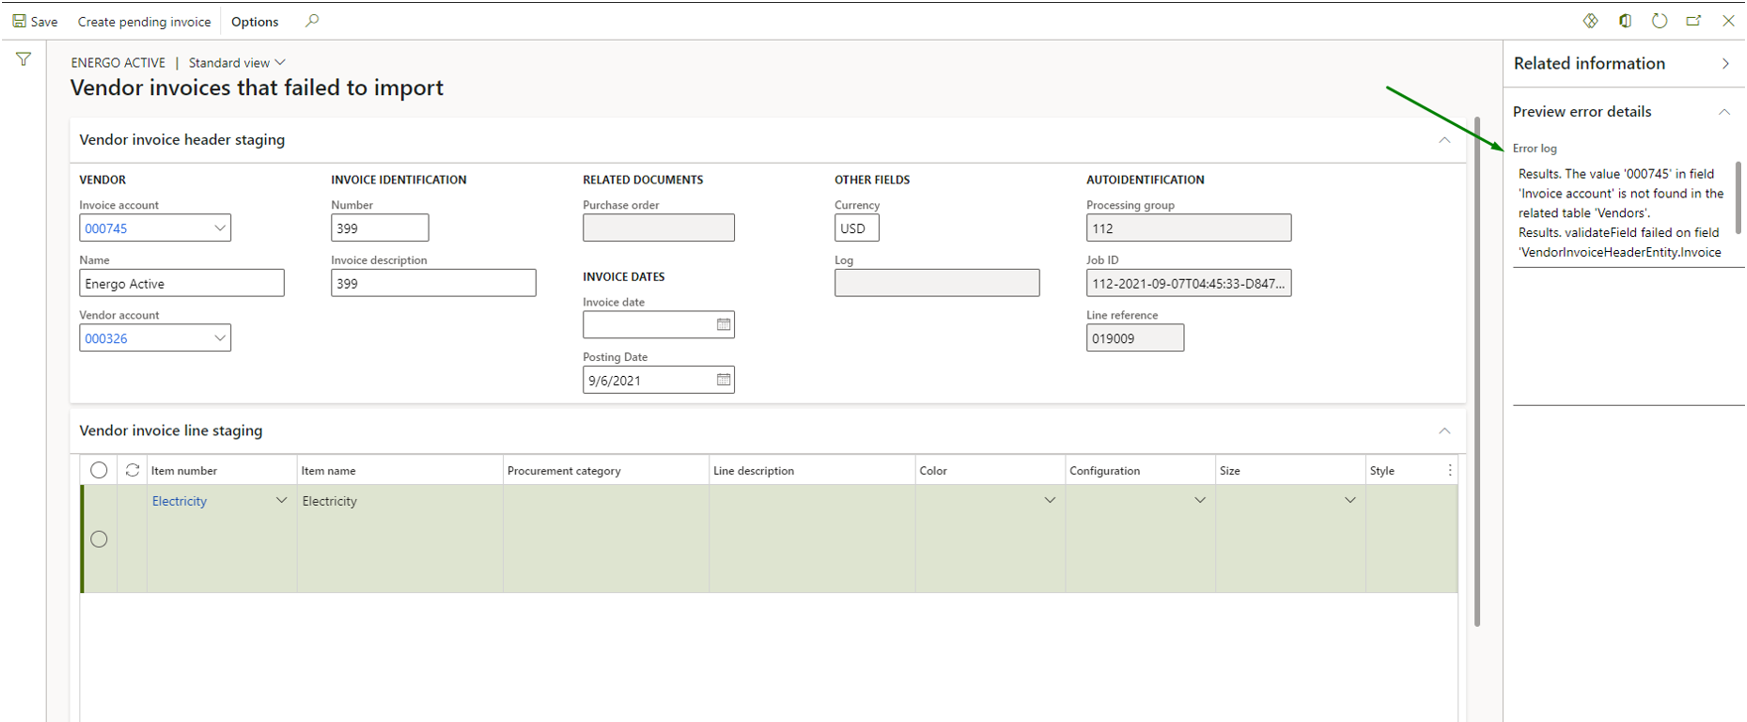 Vendor invoice automation_Pic. 8 – Vendor invoices that failed to import view